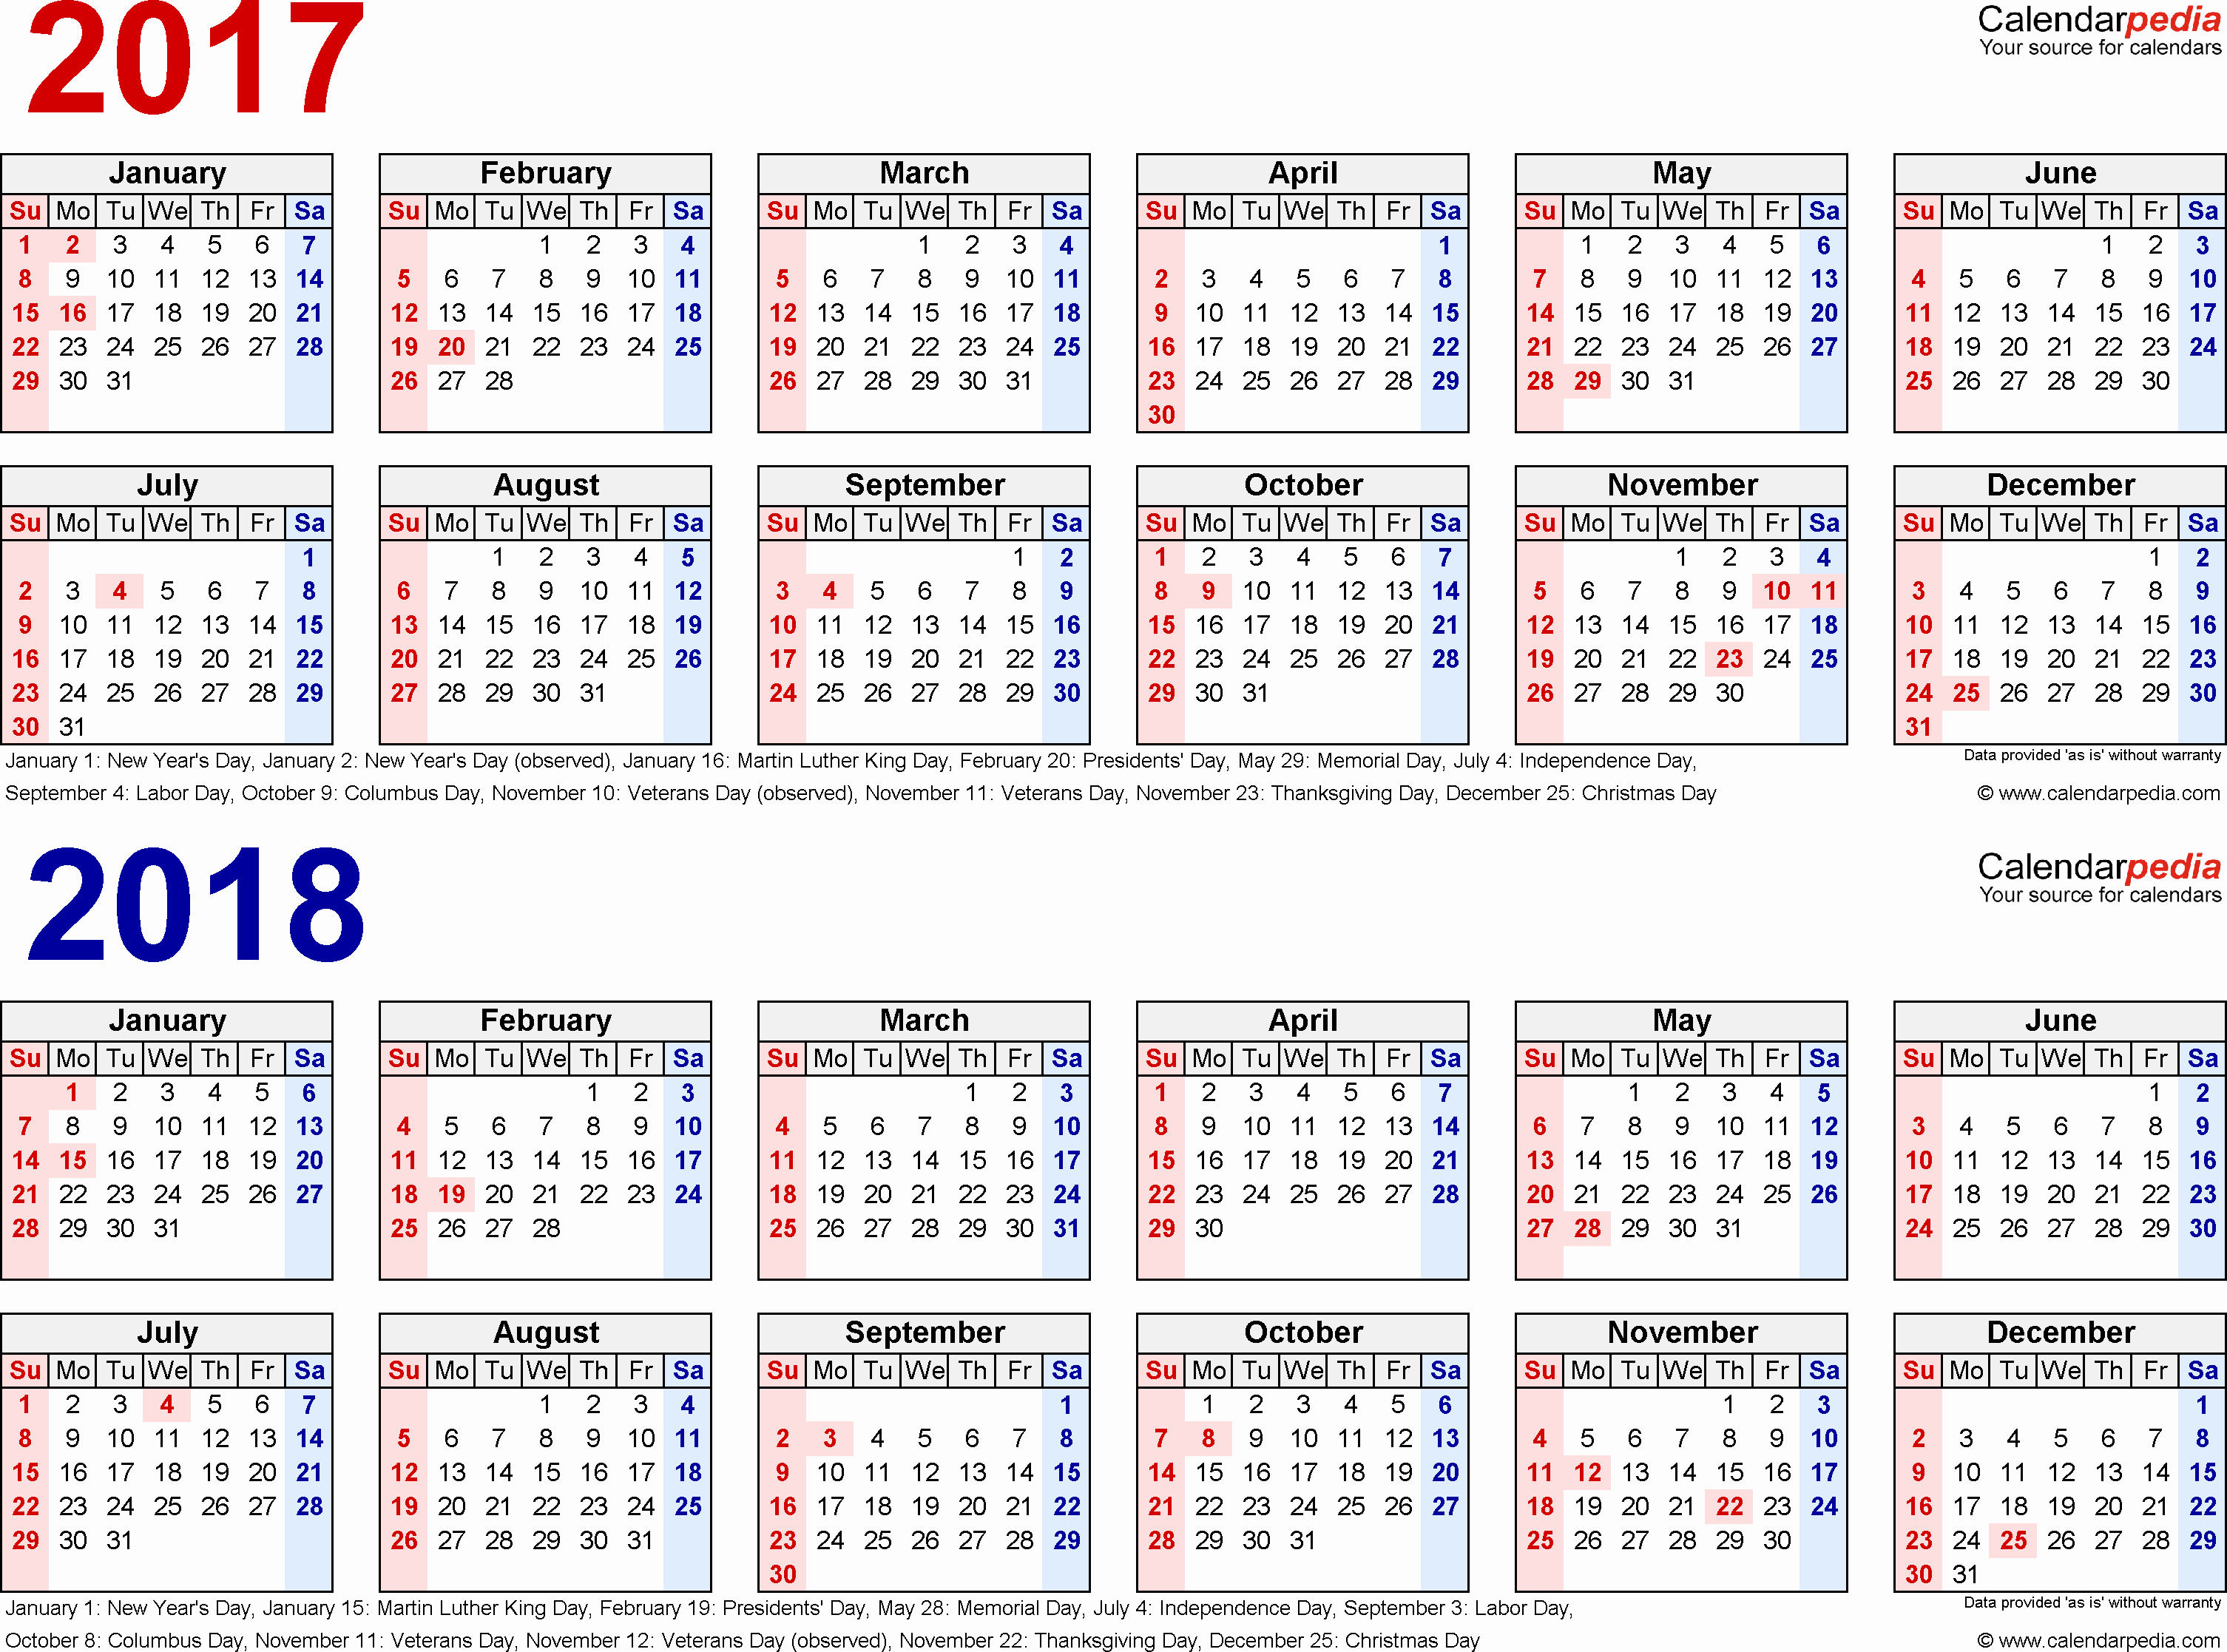 2017-18 Blank Calendar Fresh 2017 2018 Calendar Free Printable Two Year Word Calendars